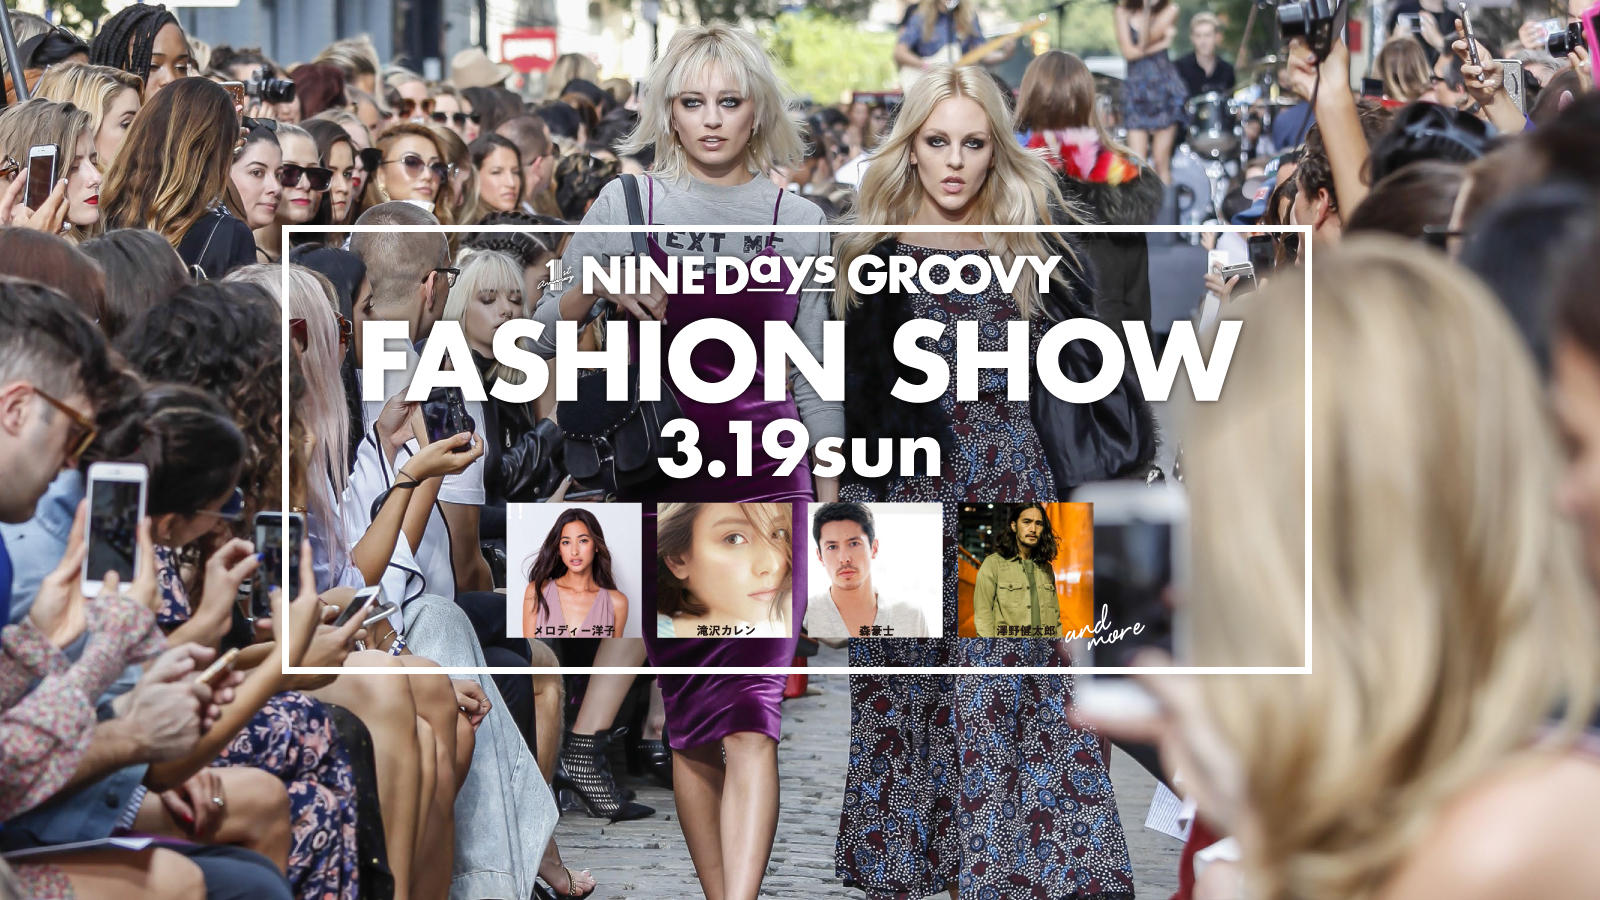 3.19sun FASHION SHOW ~NINE Days GROOVY ~